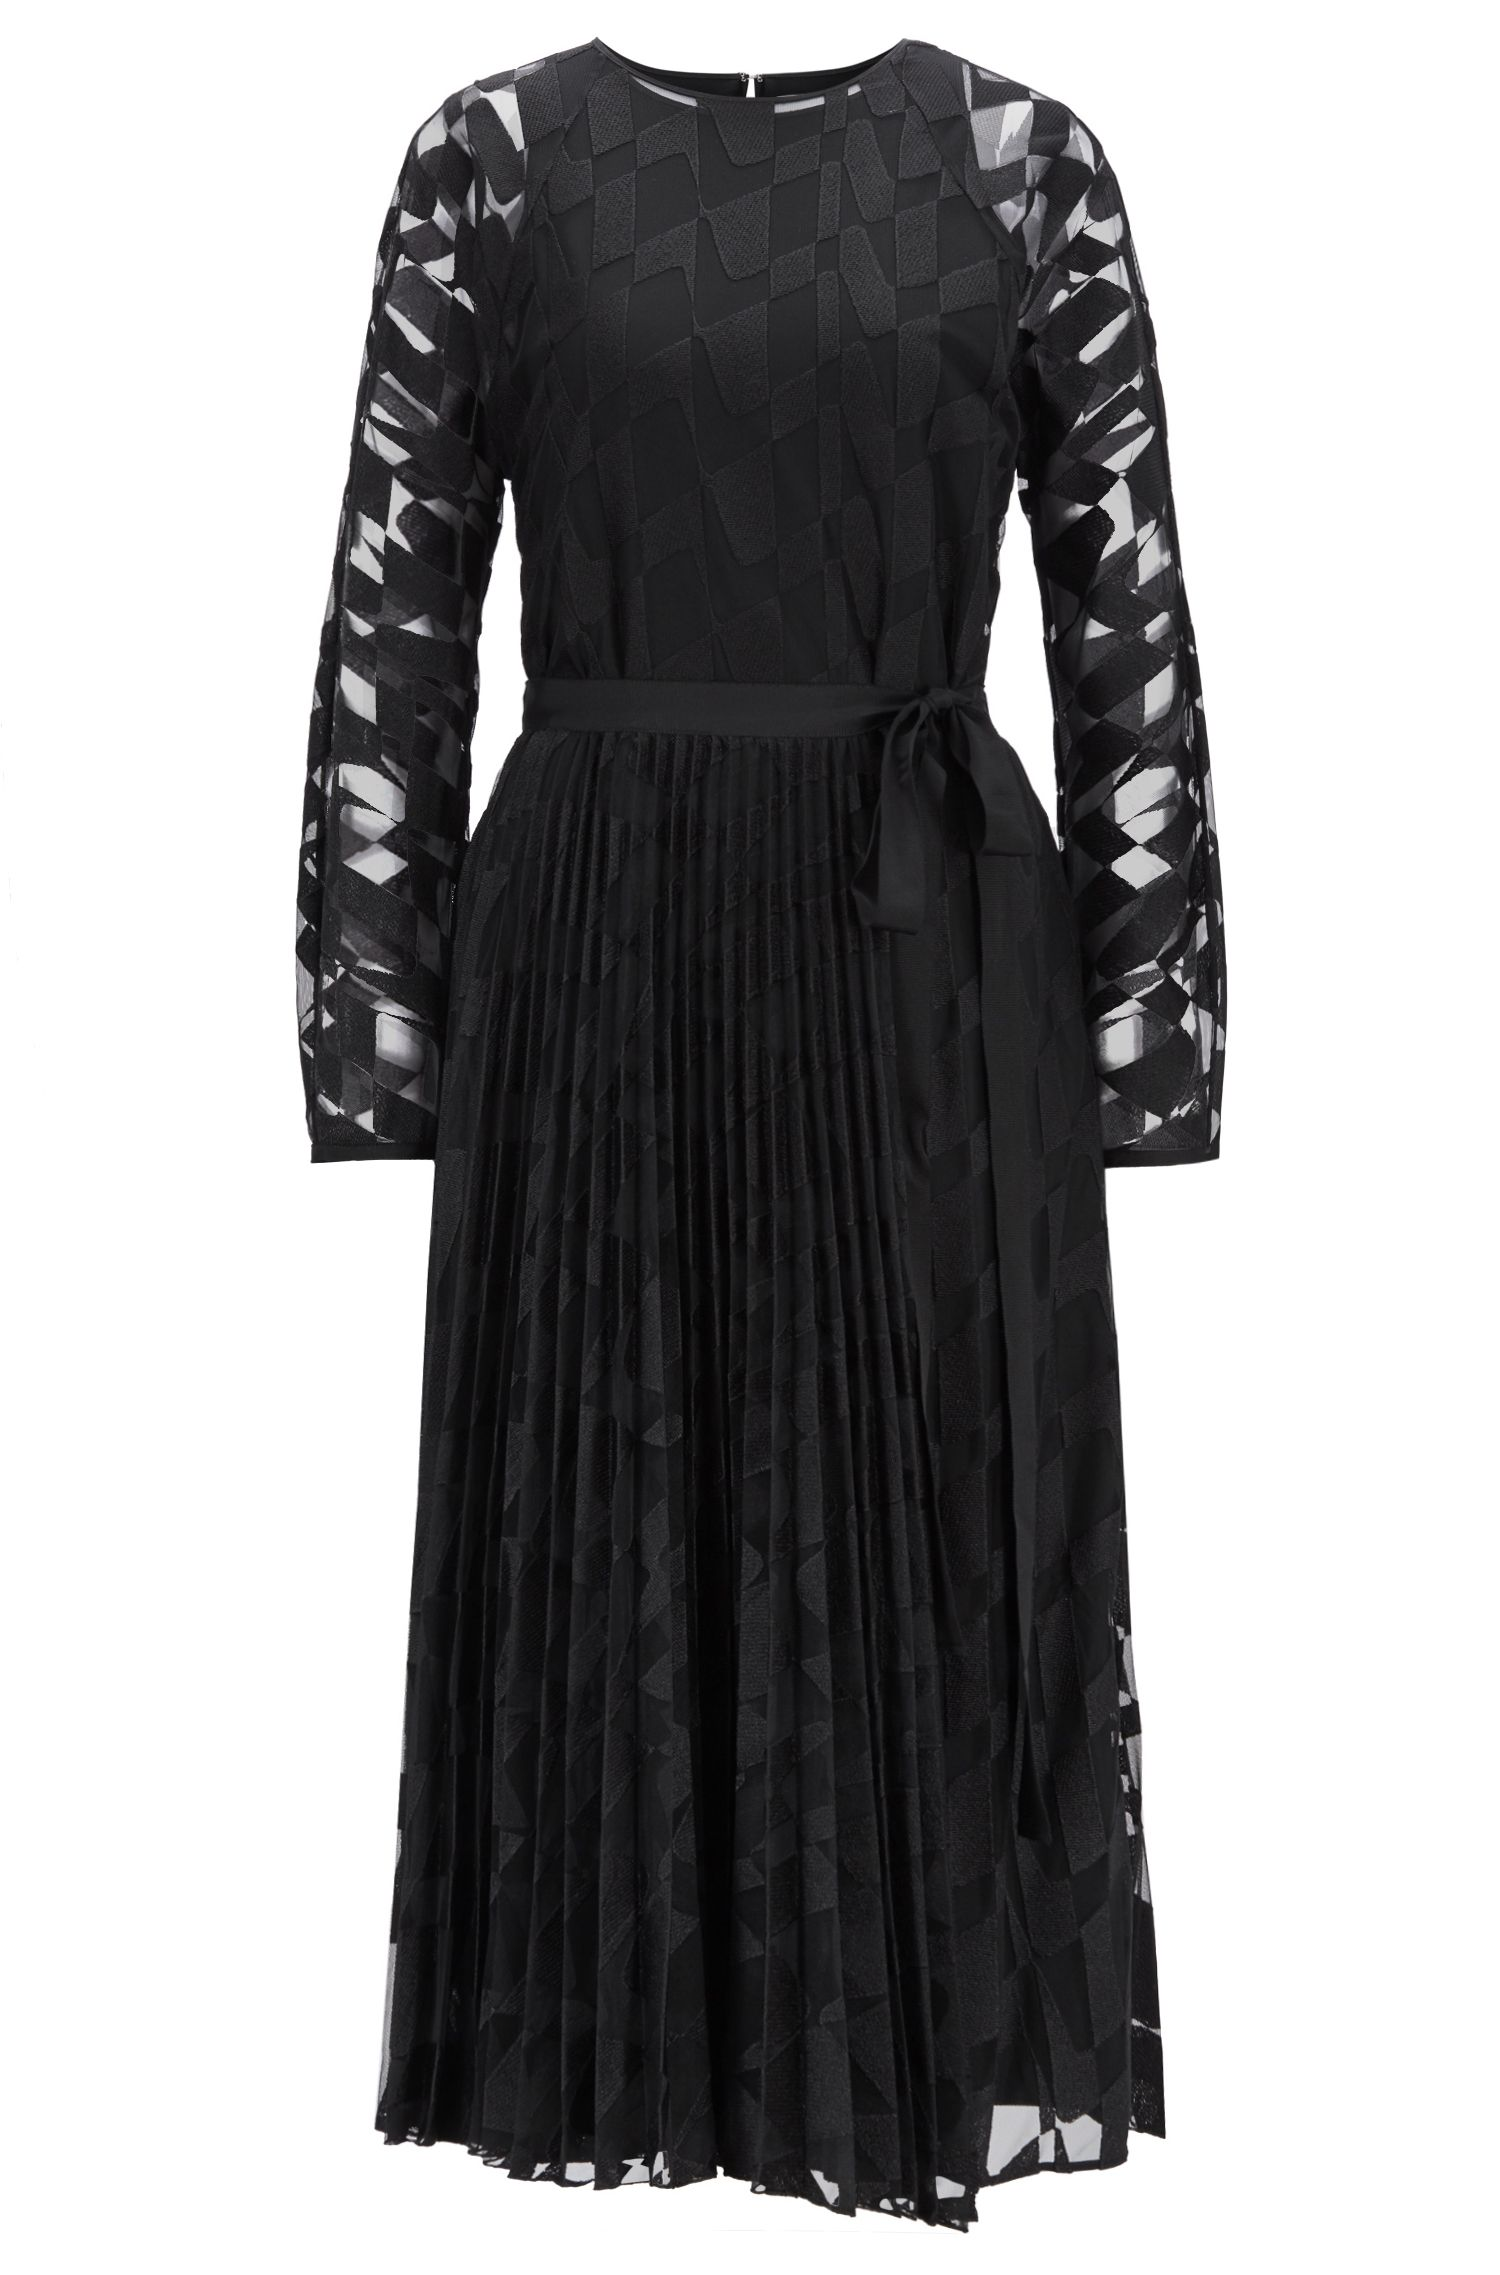 Long-sleeved midi dress in embroidered tulle with plissé skirt, Patterned